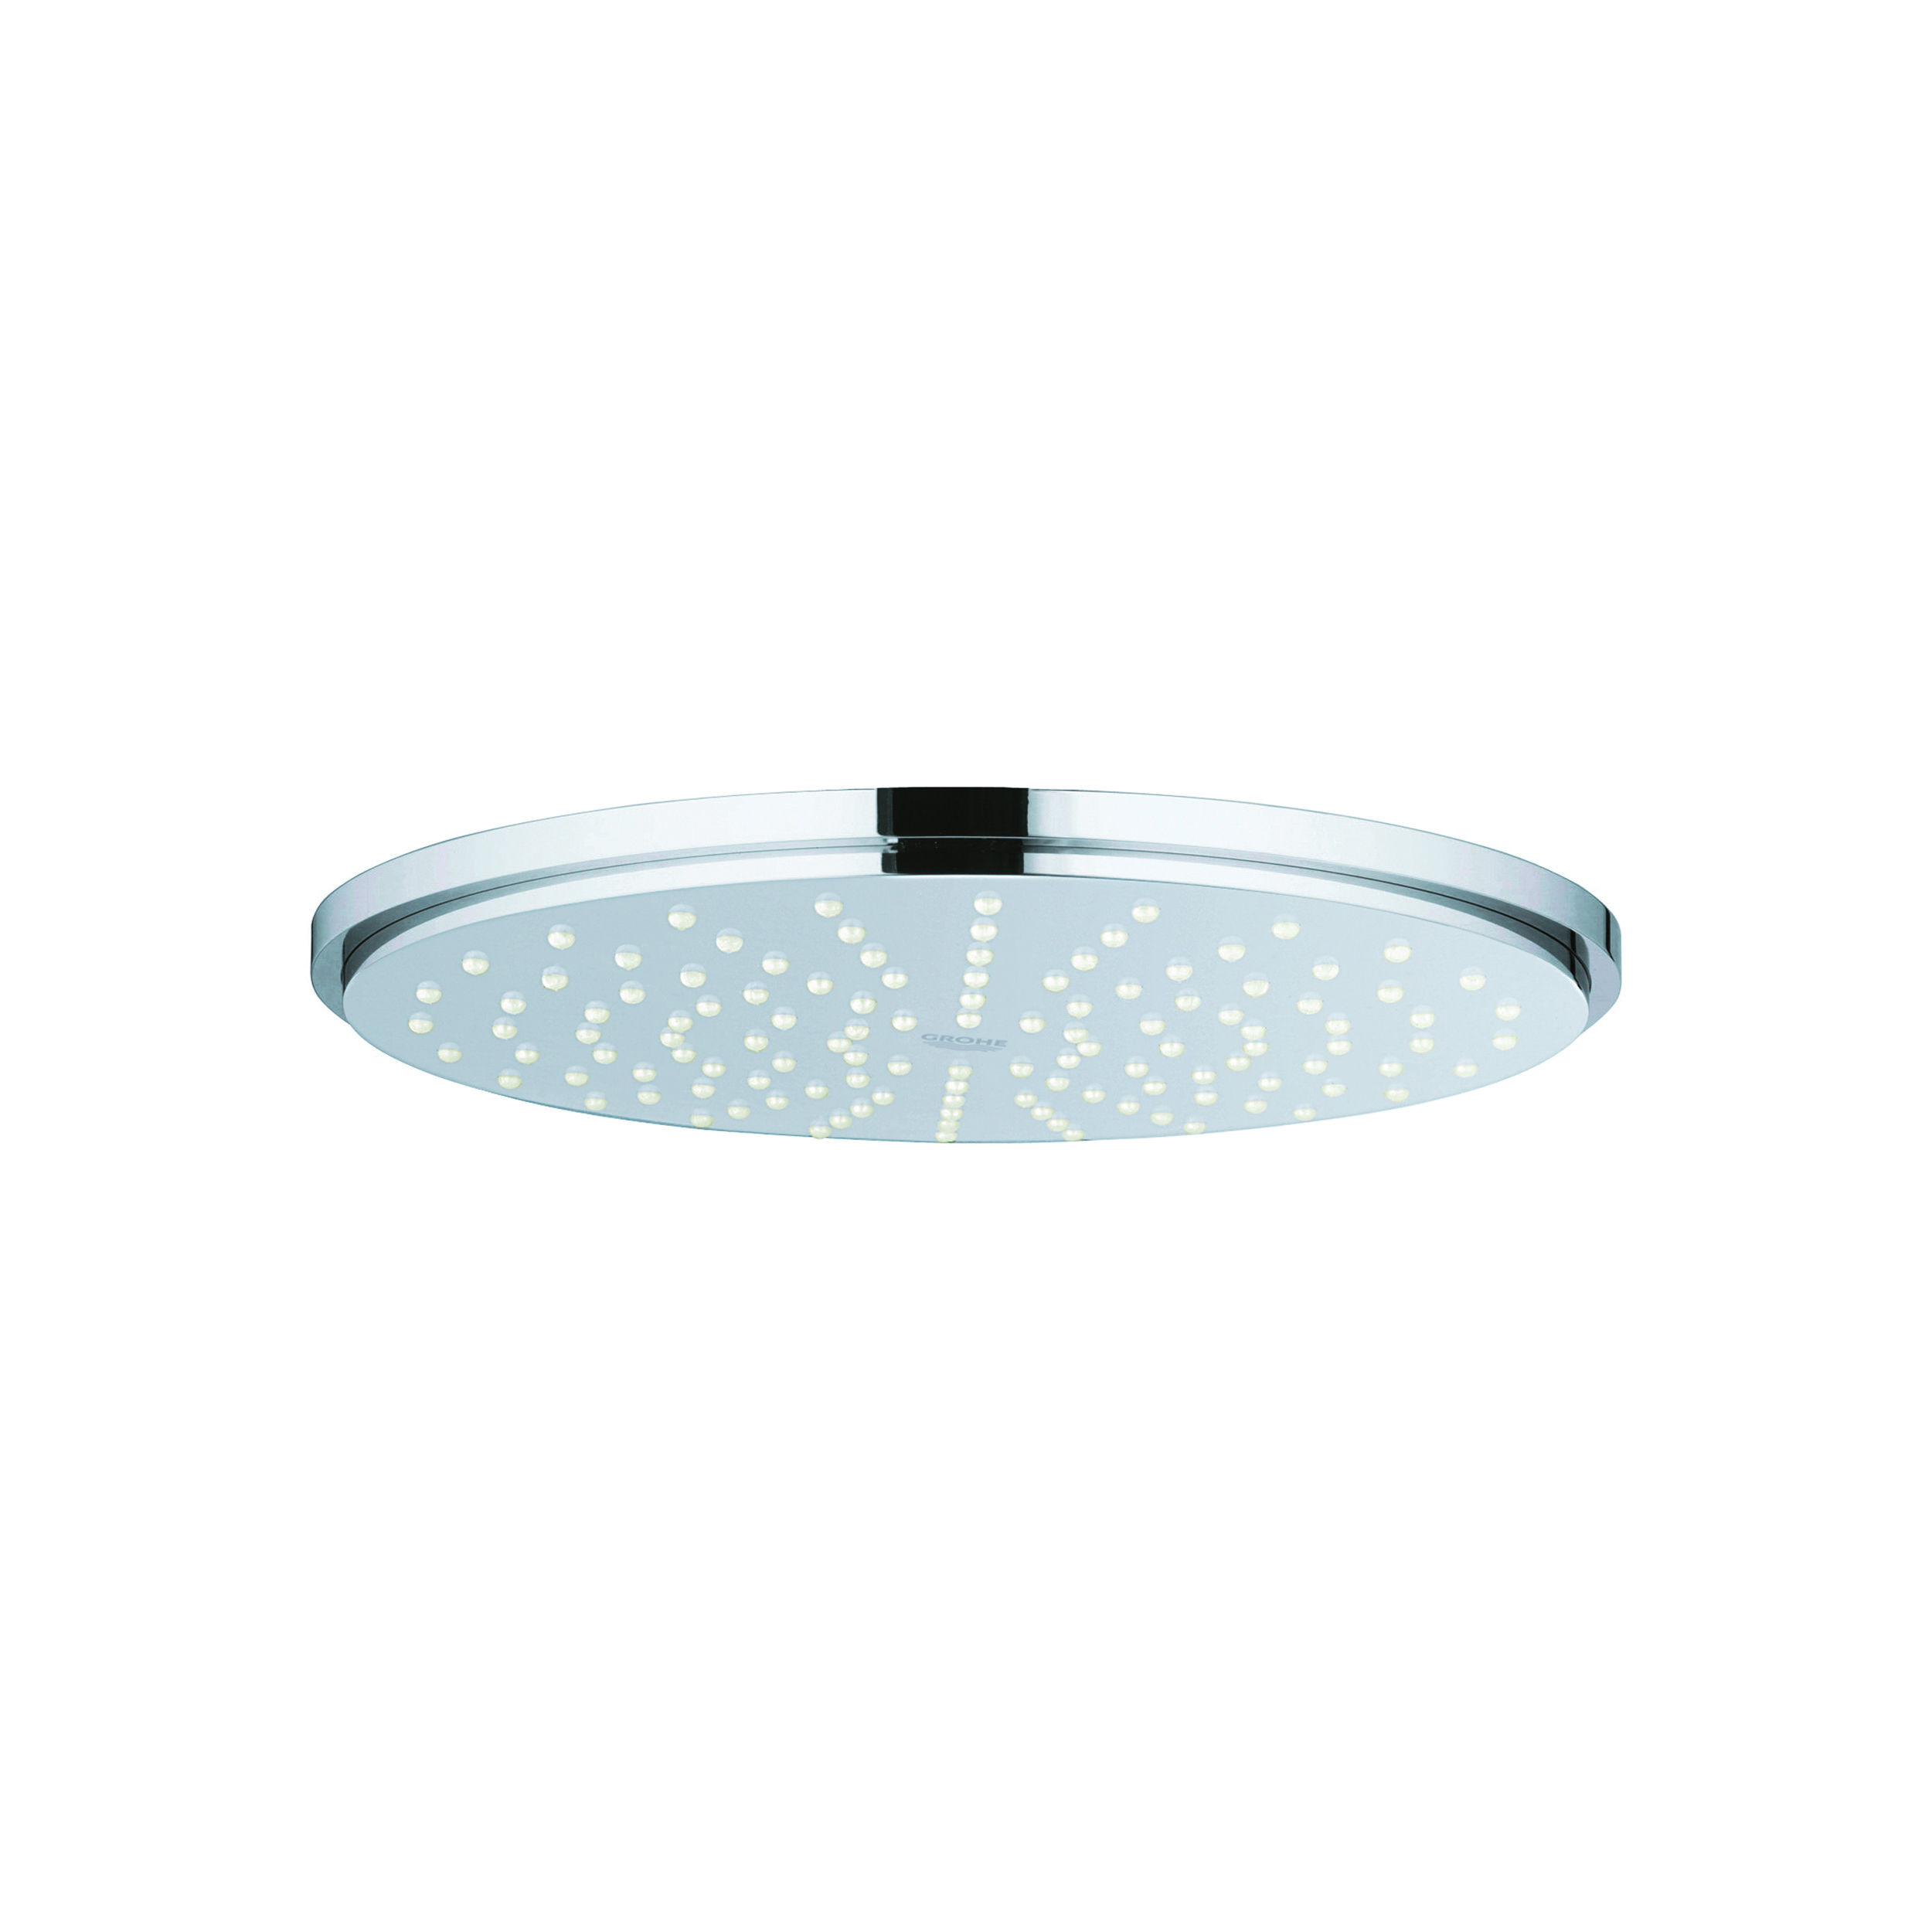 GROHE 27814000 Rainshower® Cosmopolitan 210 Shower Head With Ball Joint, 2 gpm, 1 Spray, Wall Mount, 8-1/4 in Head, Import